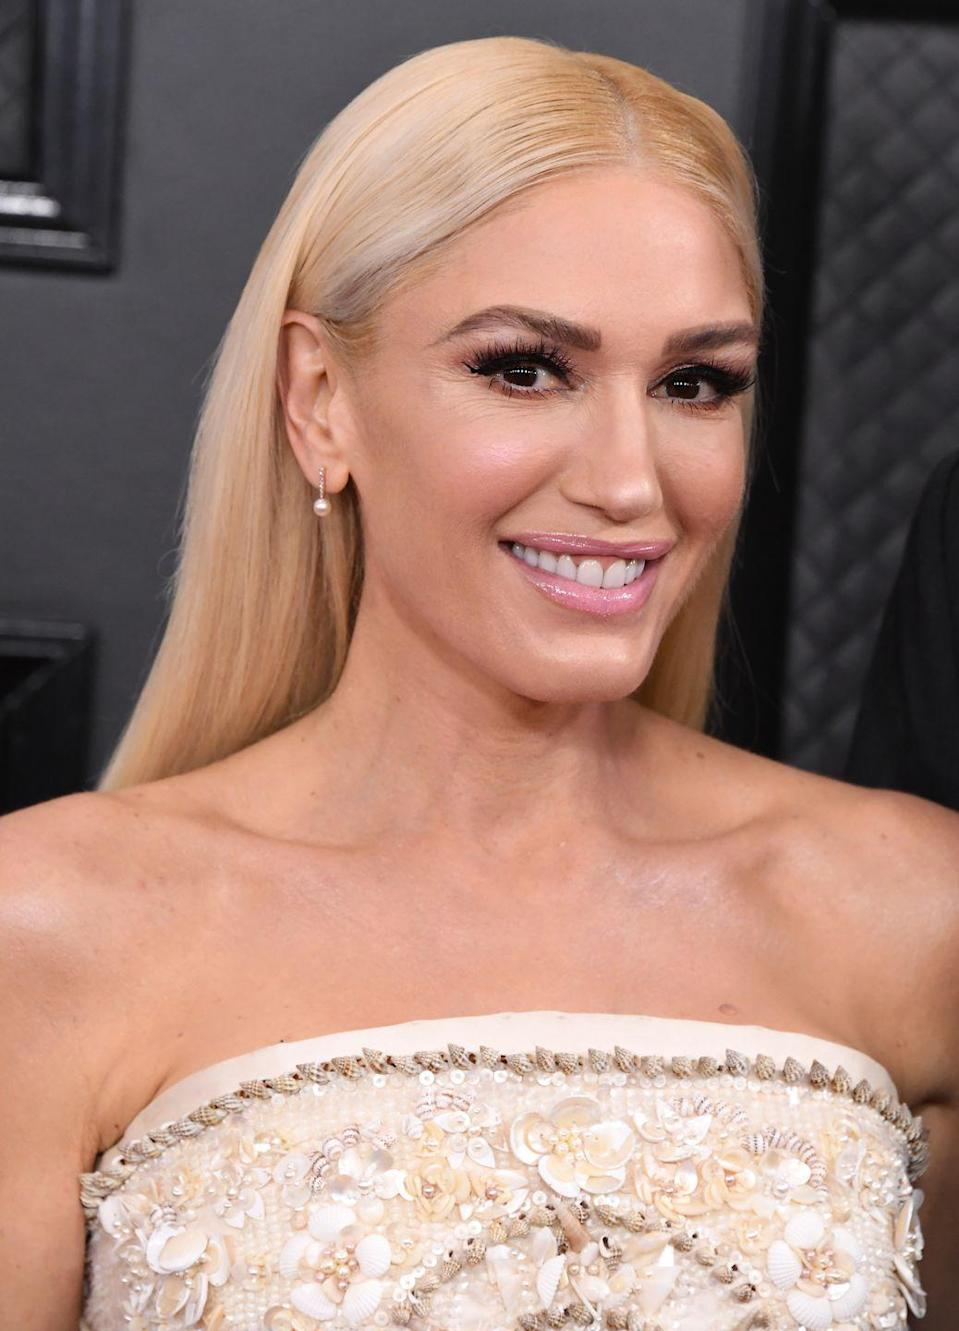 <p>Platinum blonde is not just for the summer months: This gorgeous bright look rocked by Gwen Stefani is great for any season, as long as you're in for the maintenance! Platinum blondes have to have their color touched up more frequently, as the contrast between this bright color and natural roots can be quite drastic for some.</p>